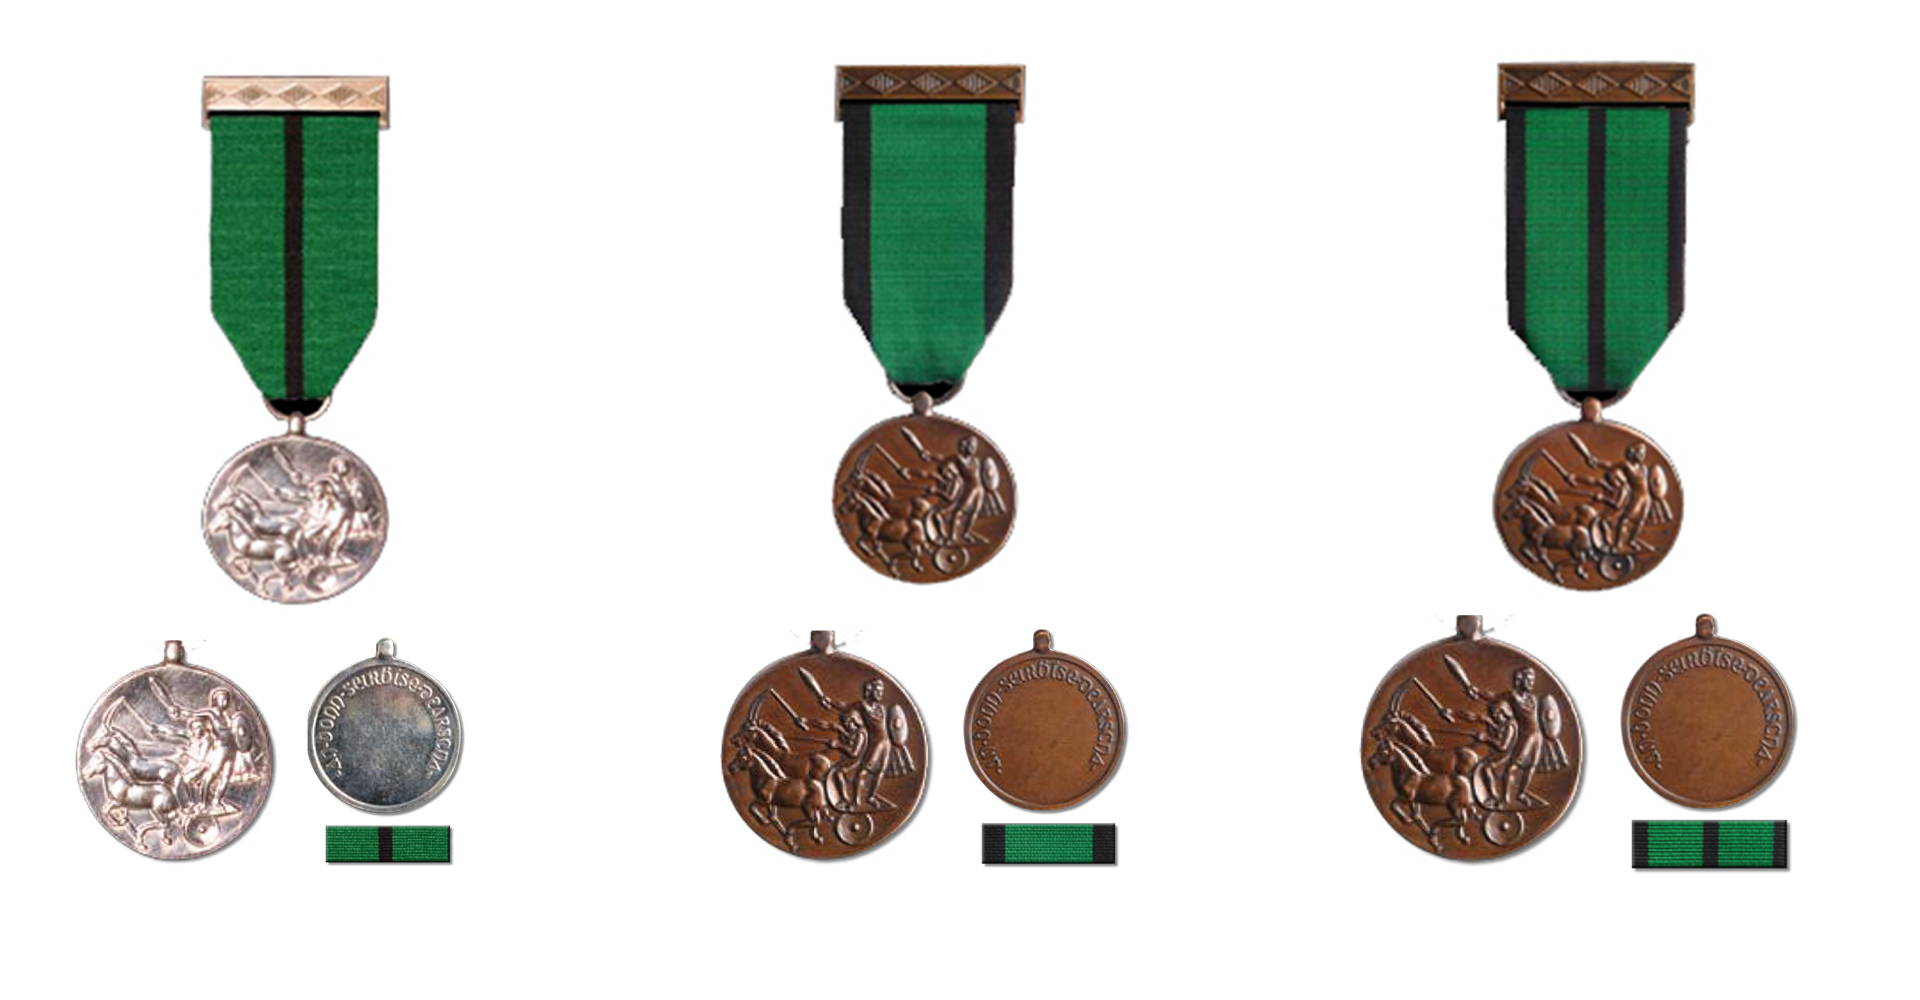 The Distinguished Service Medal (DSM)